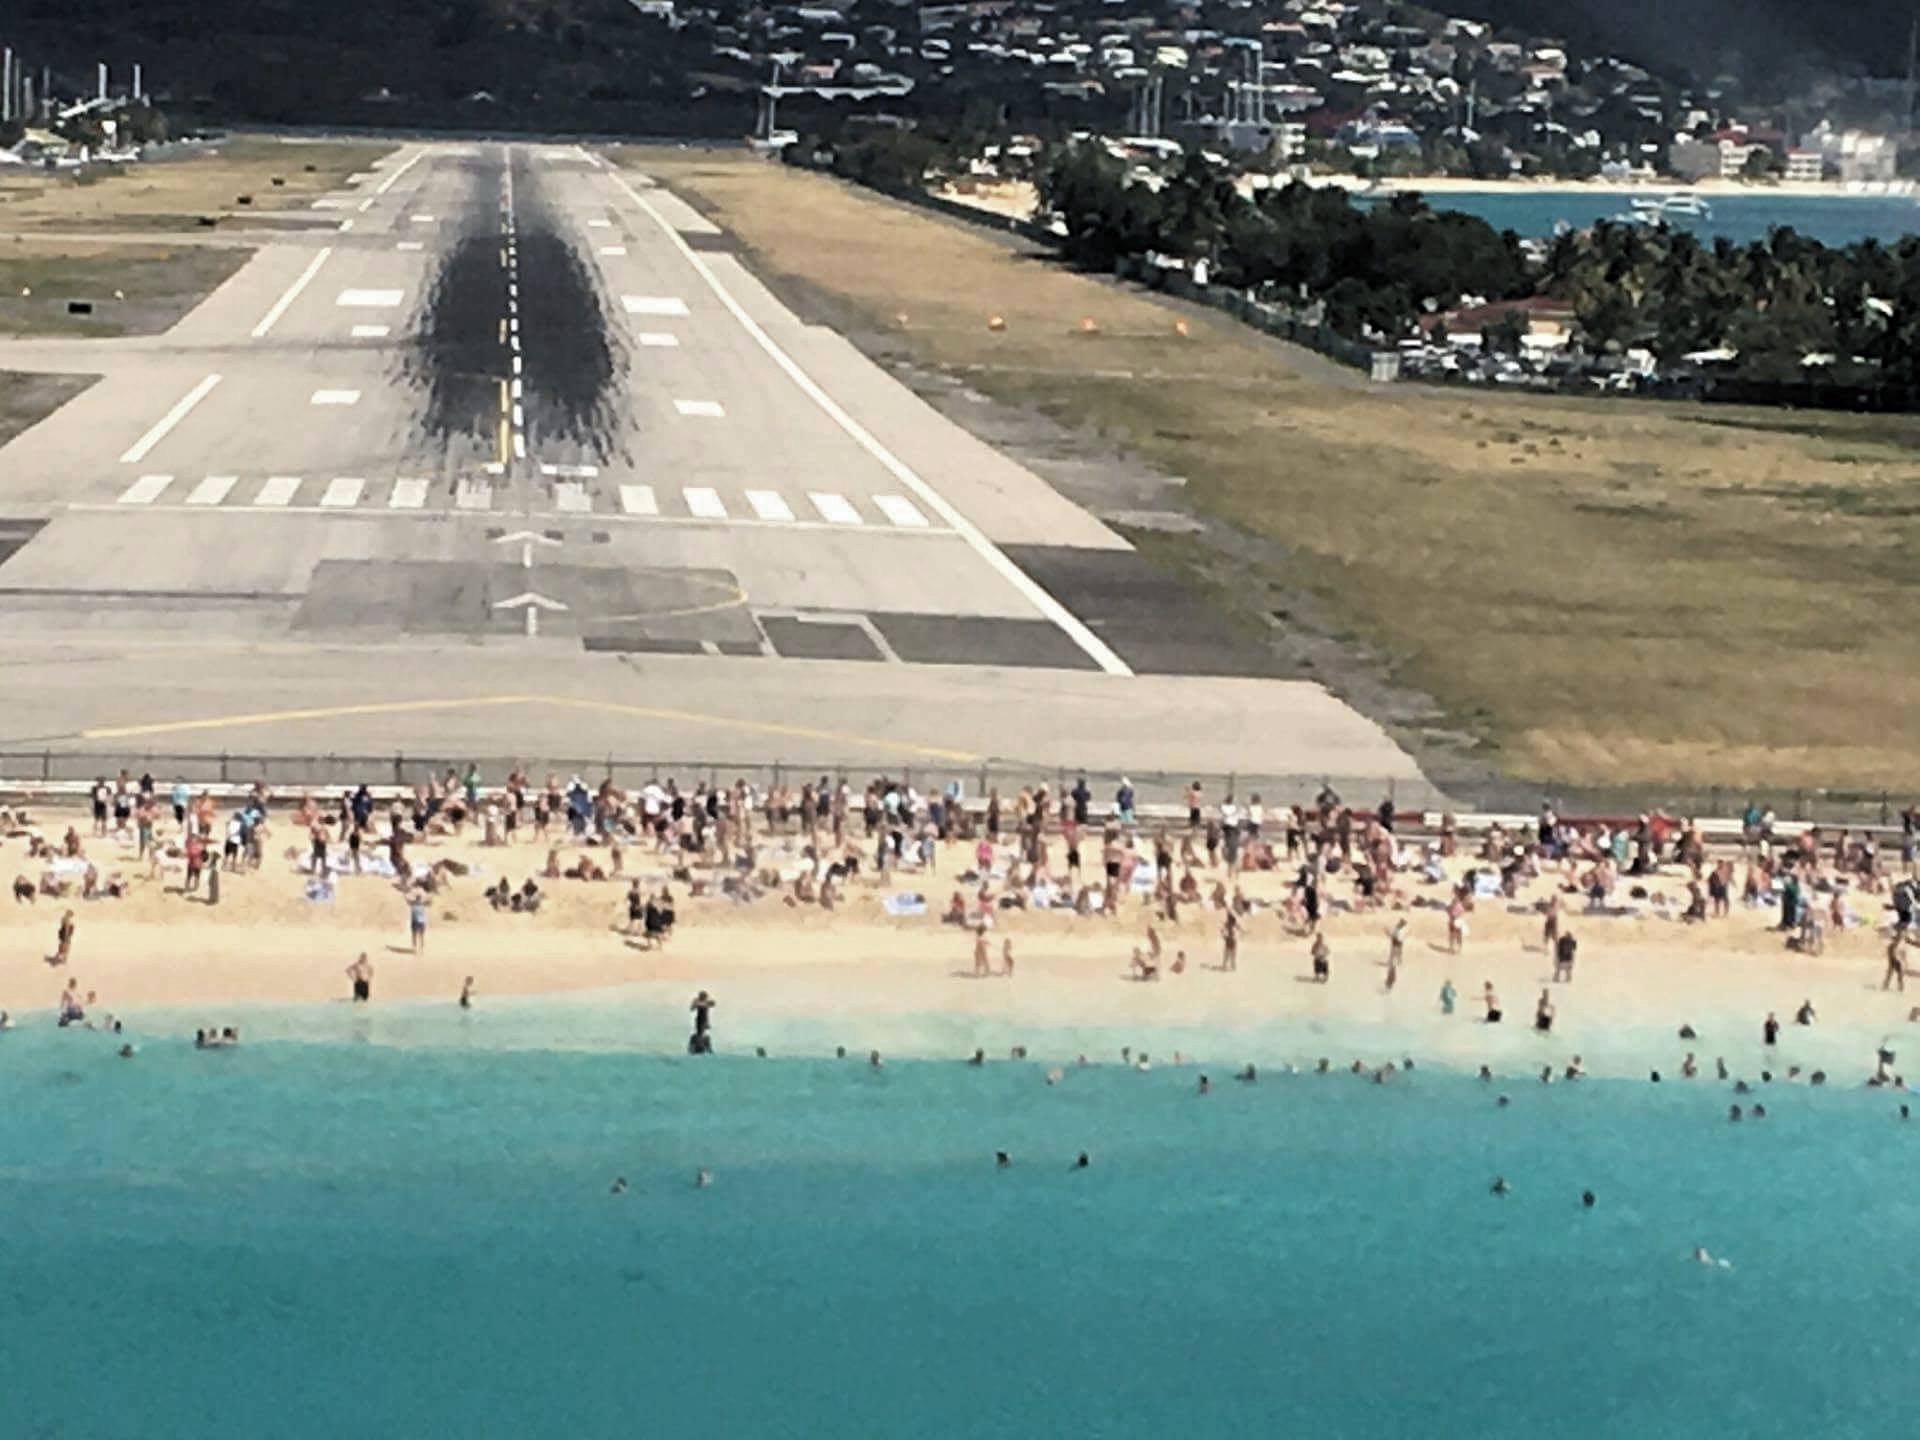 Air Safari landing at a famous Juliana Airport - St. Maarten (Picture courtesy of a Vaclav Nekvapil)